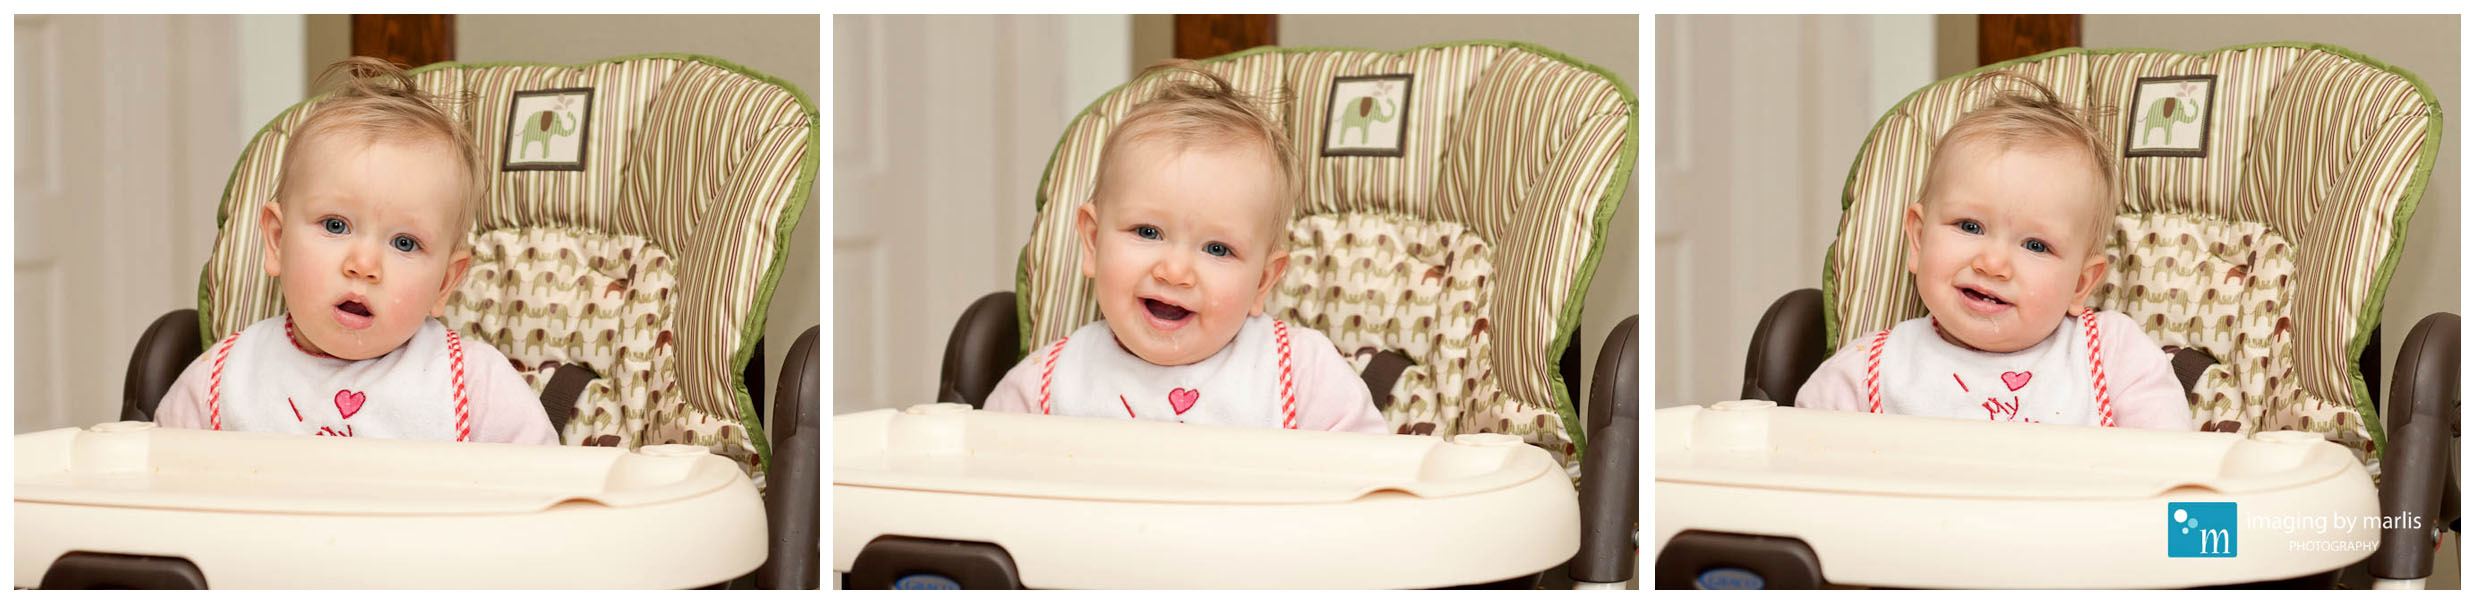 Norah in the highchair